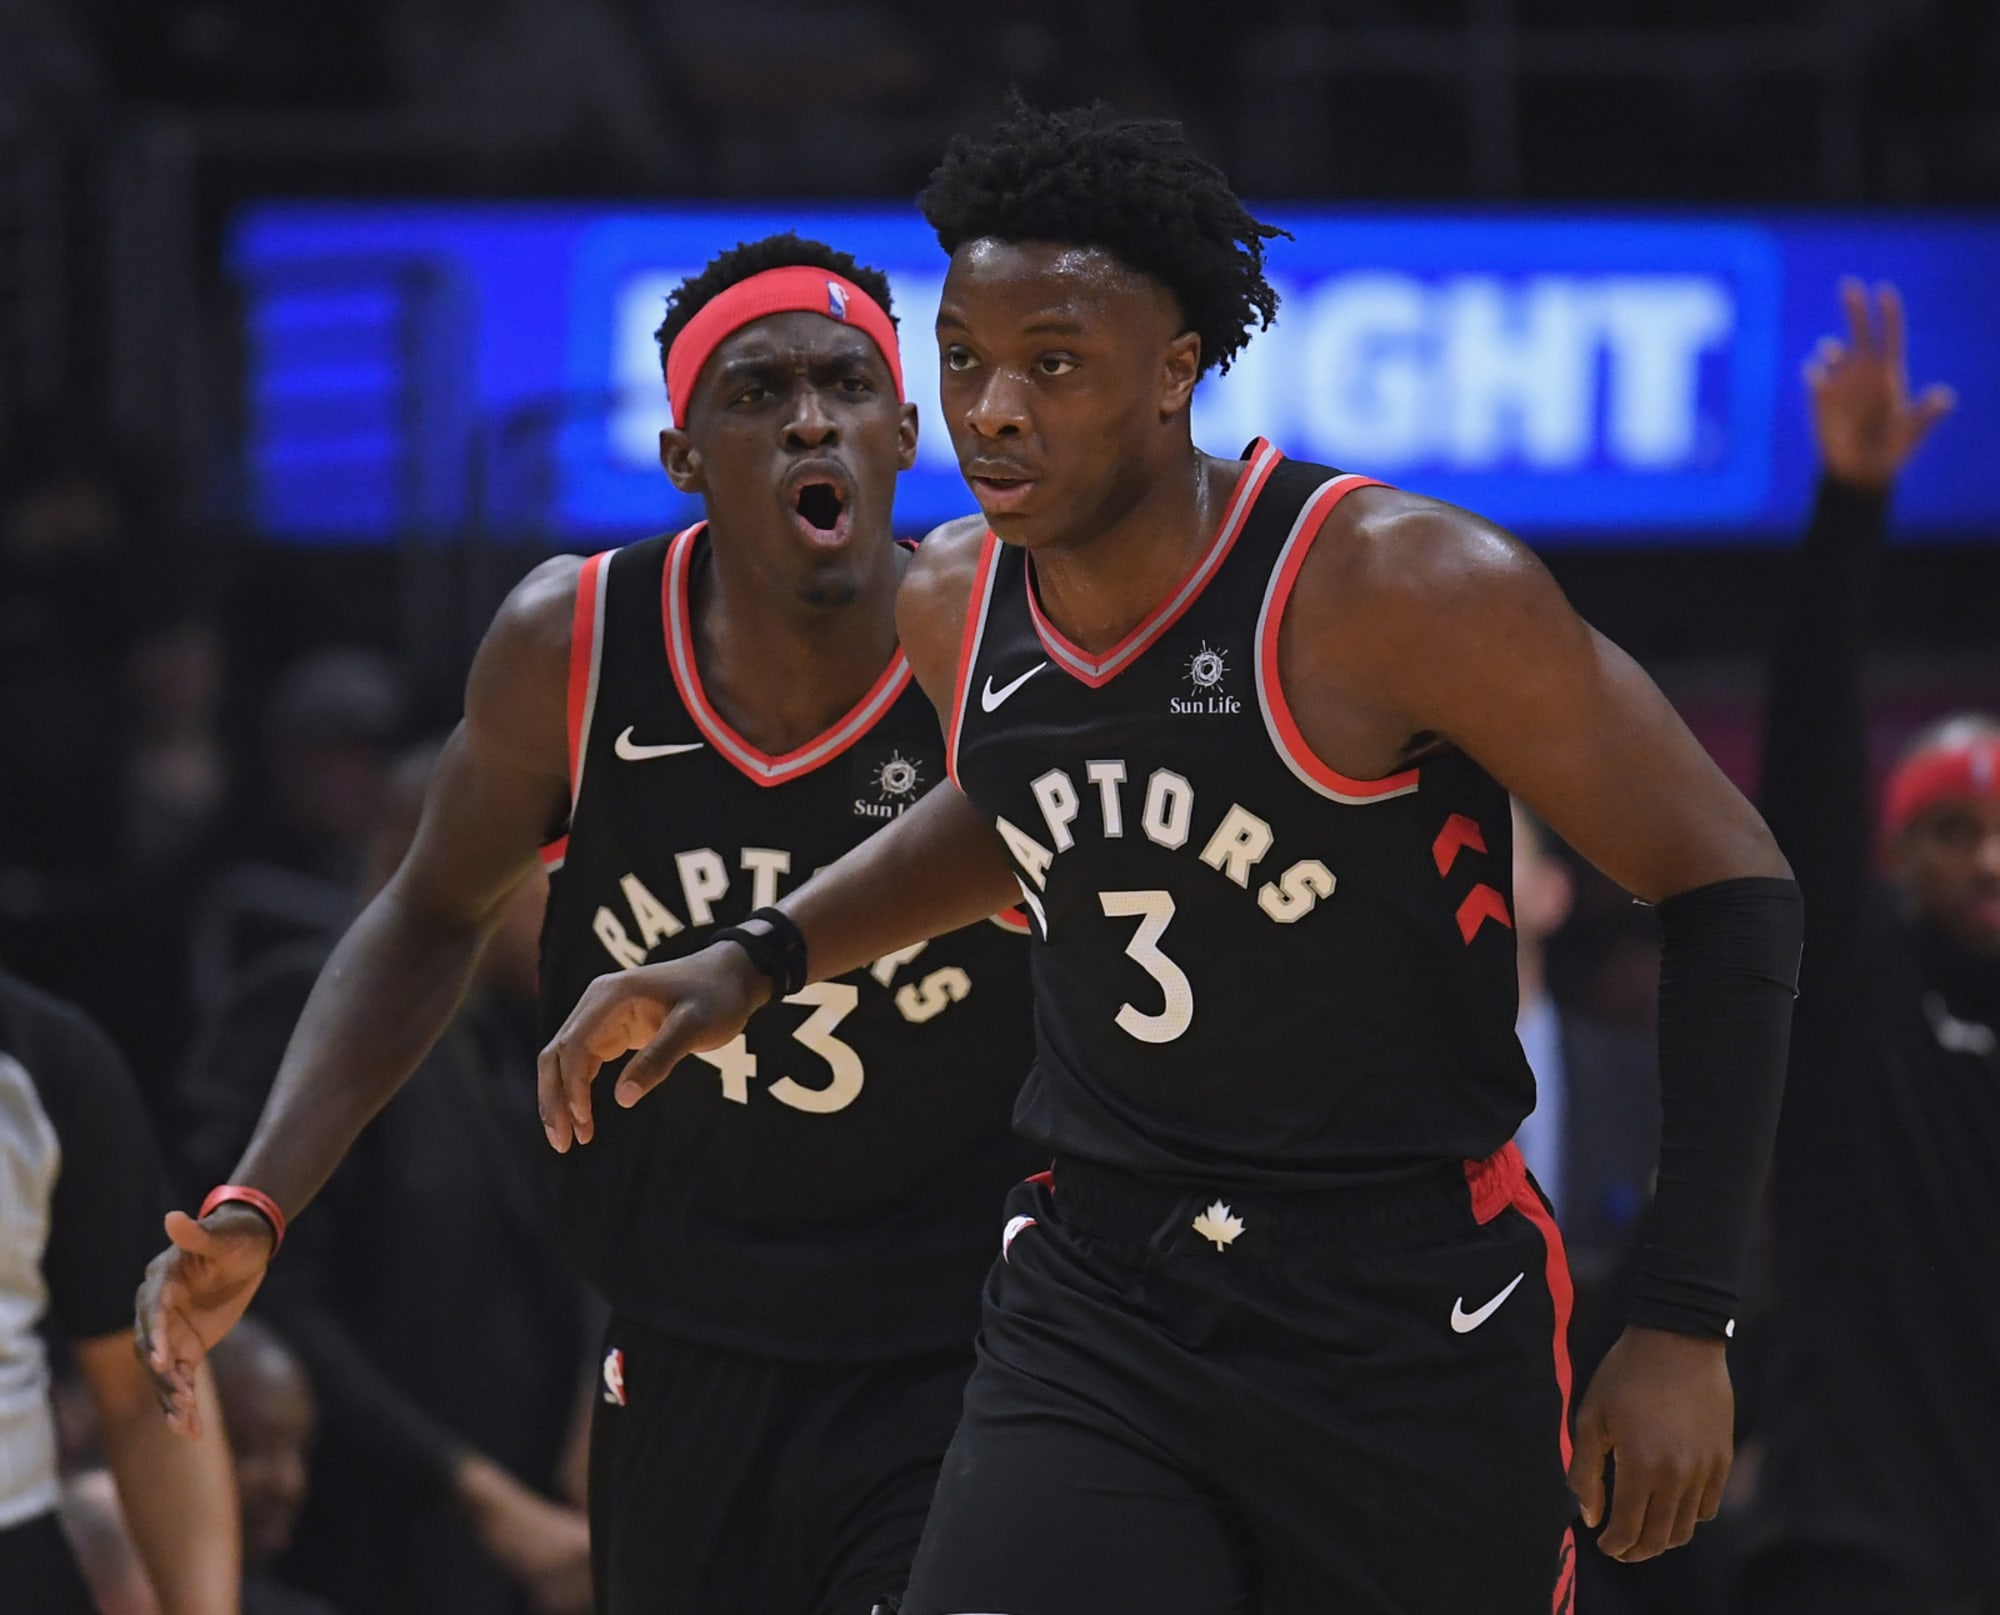 Toronto Raptors: OG Anunoby may be the answer on offense